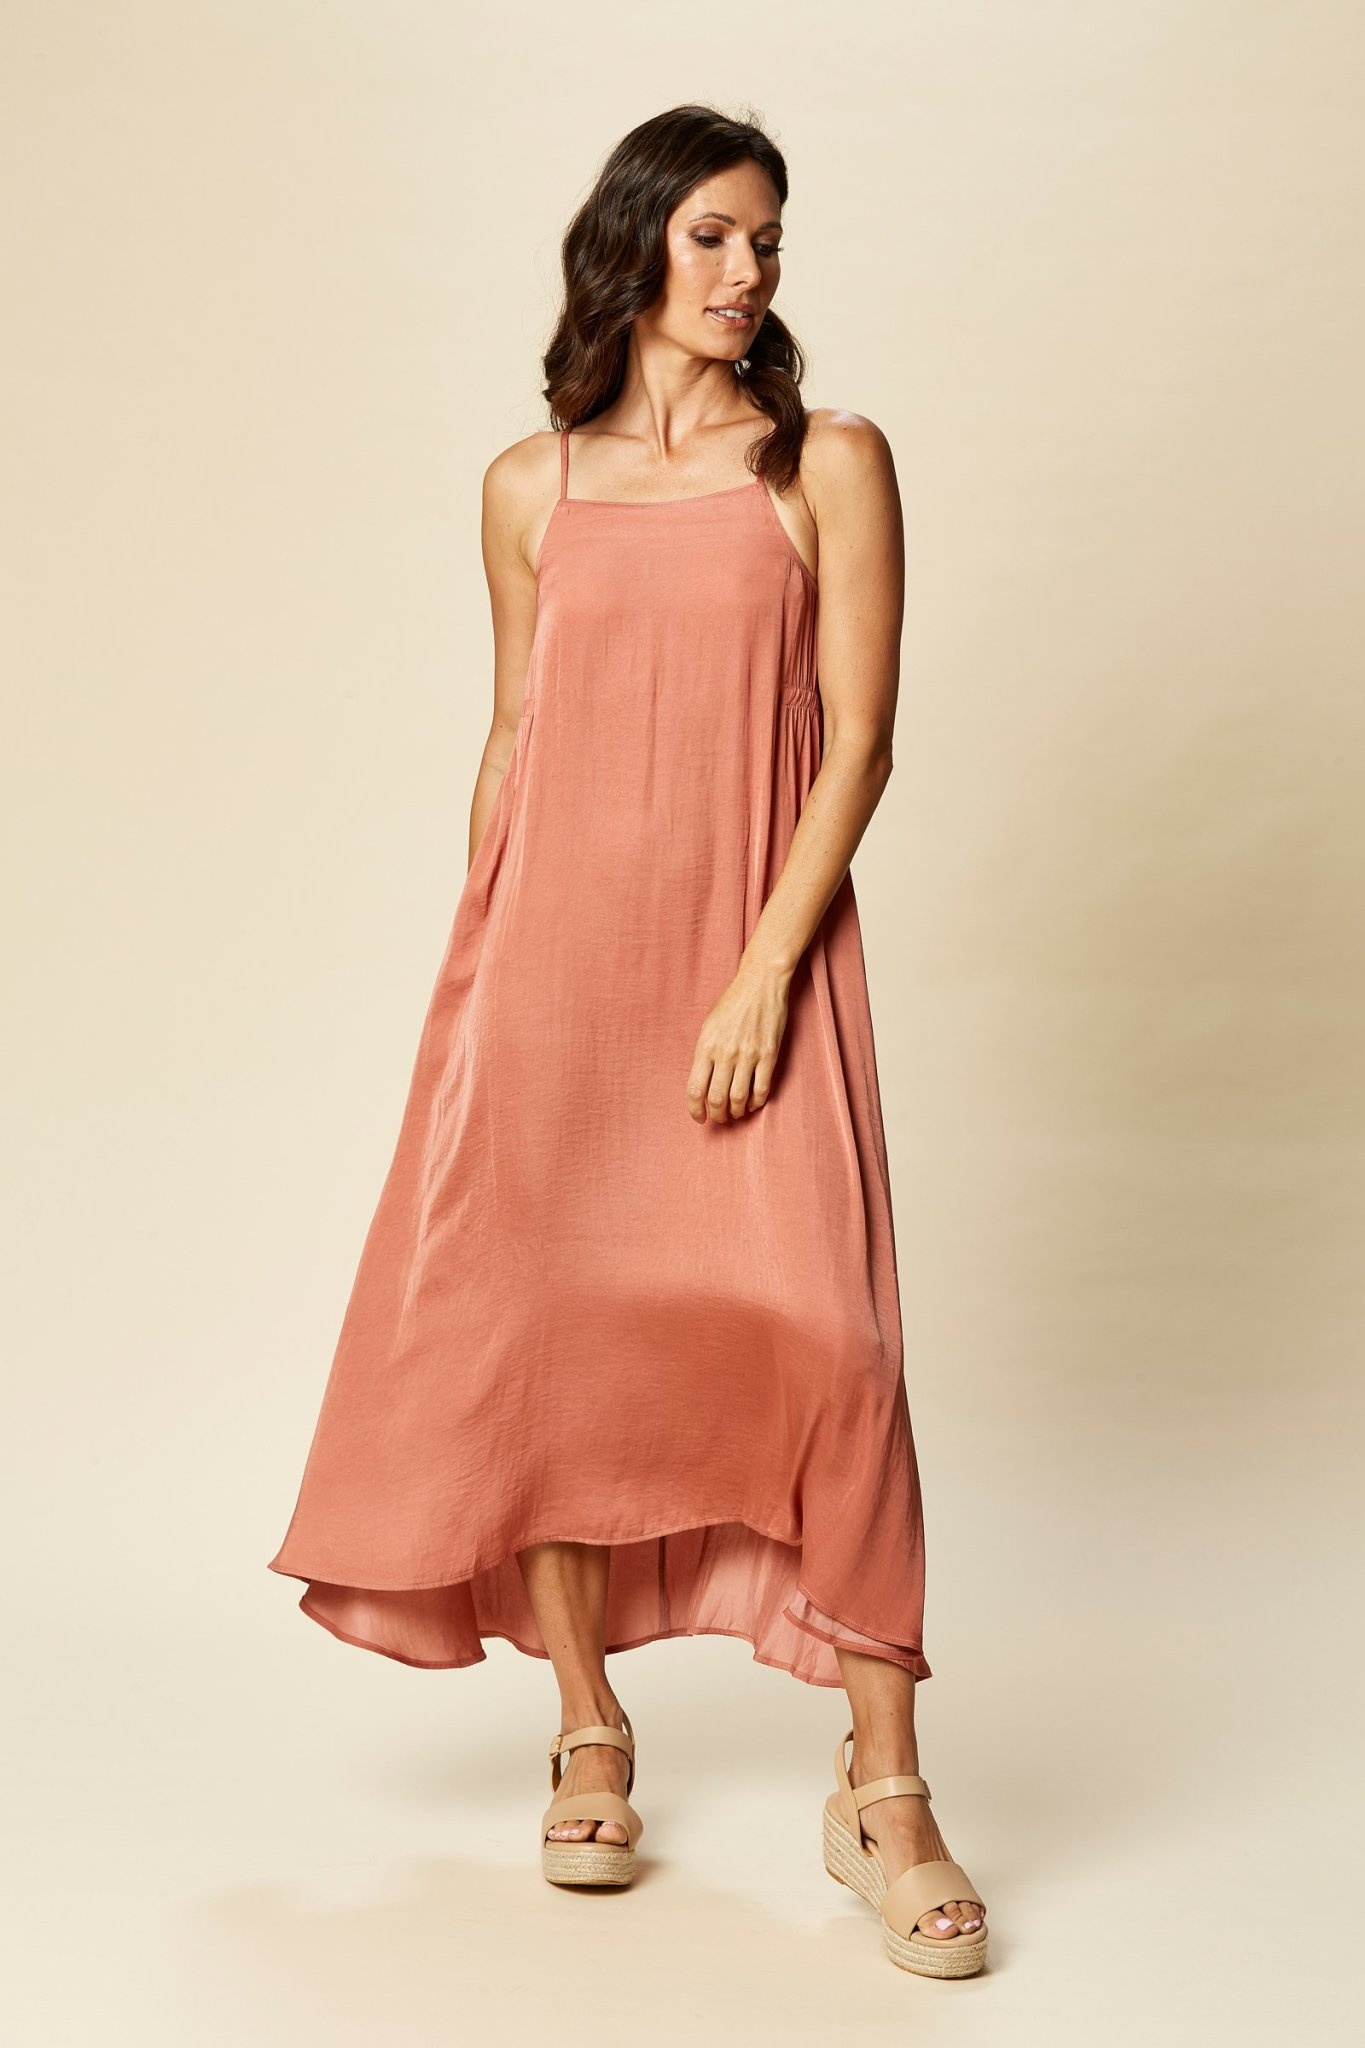 Eb & Ive Zena Maxi dress